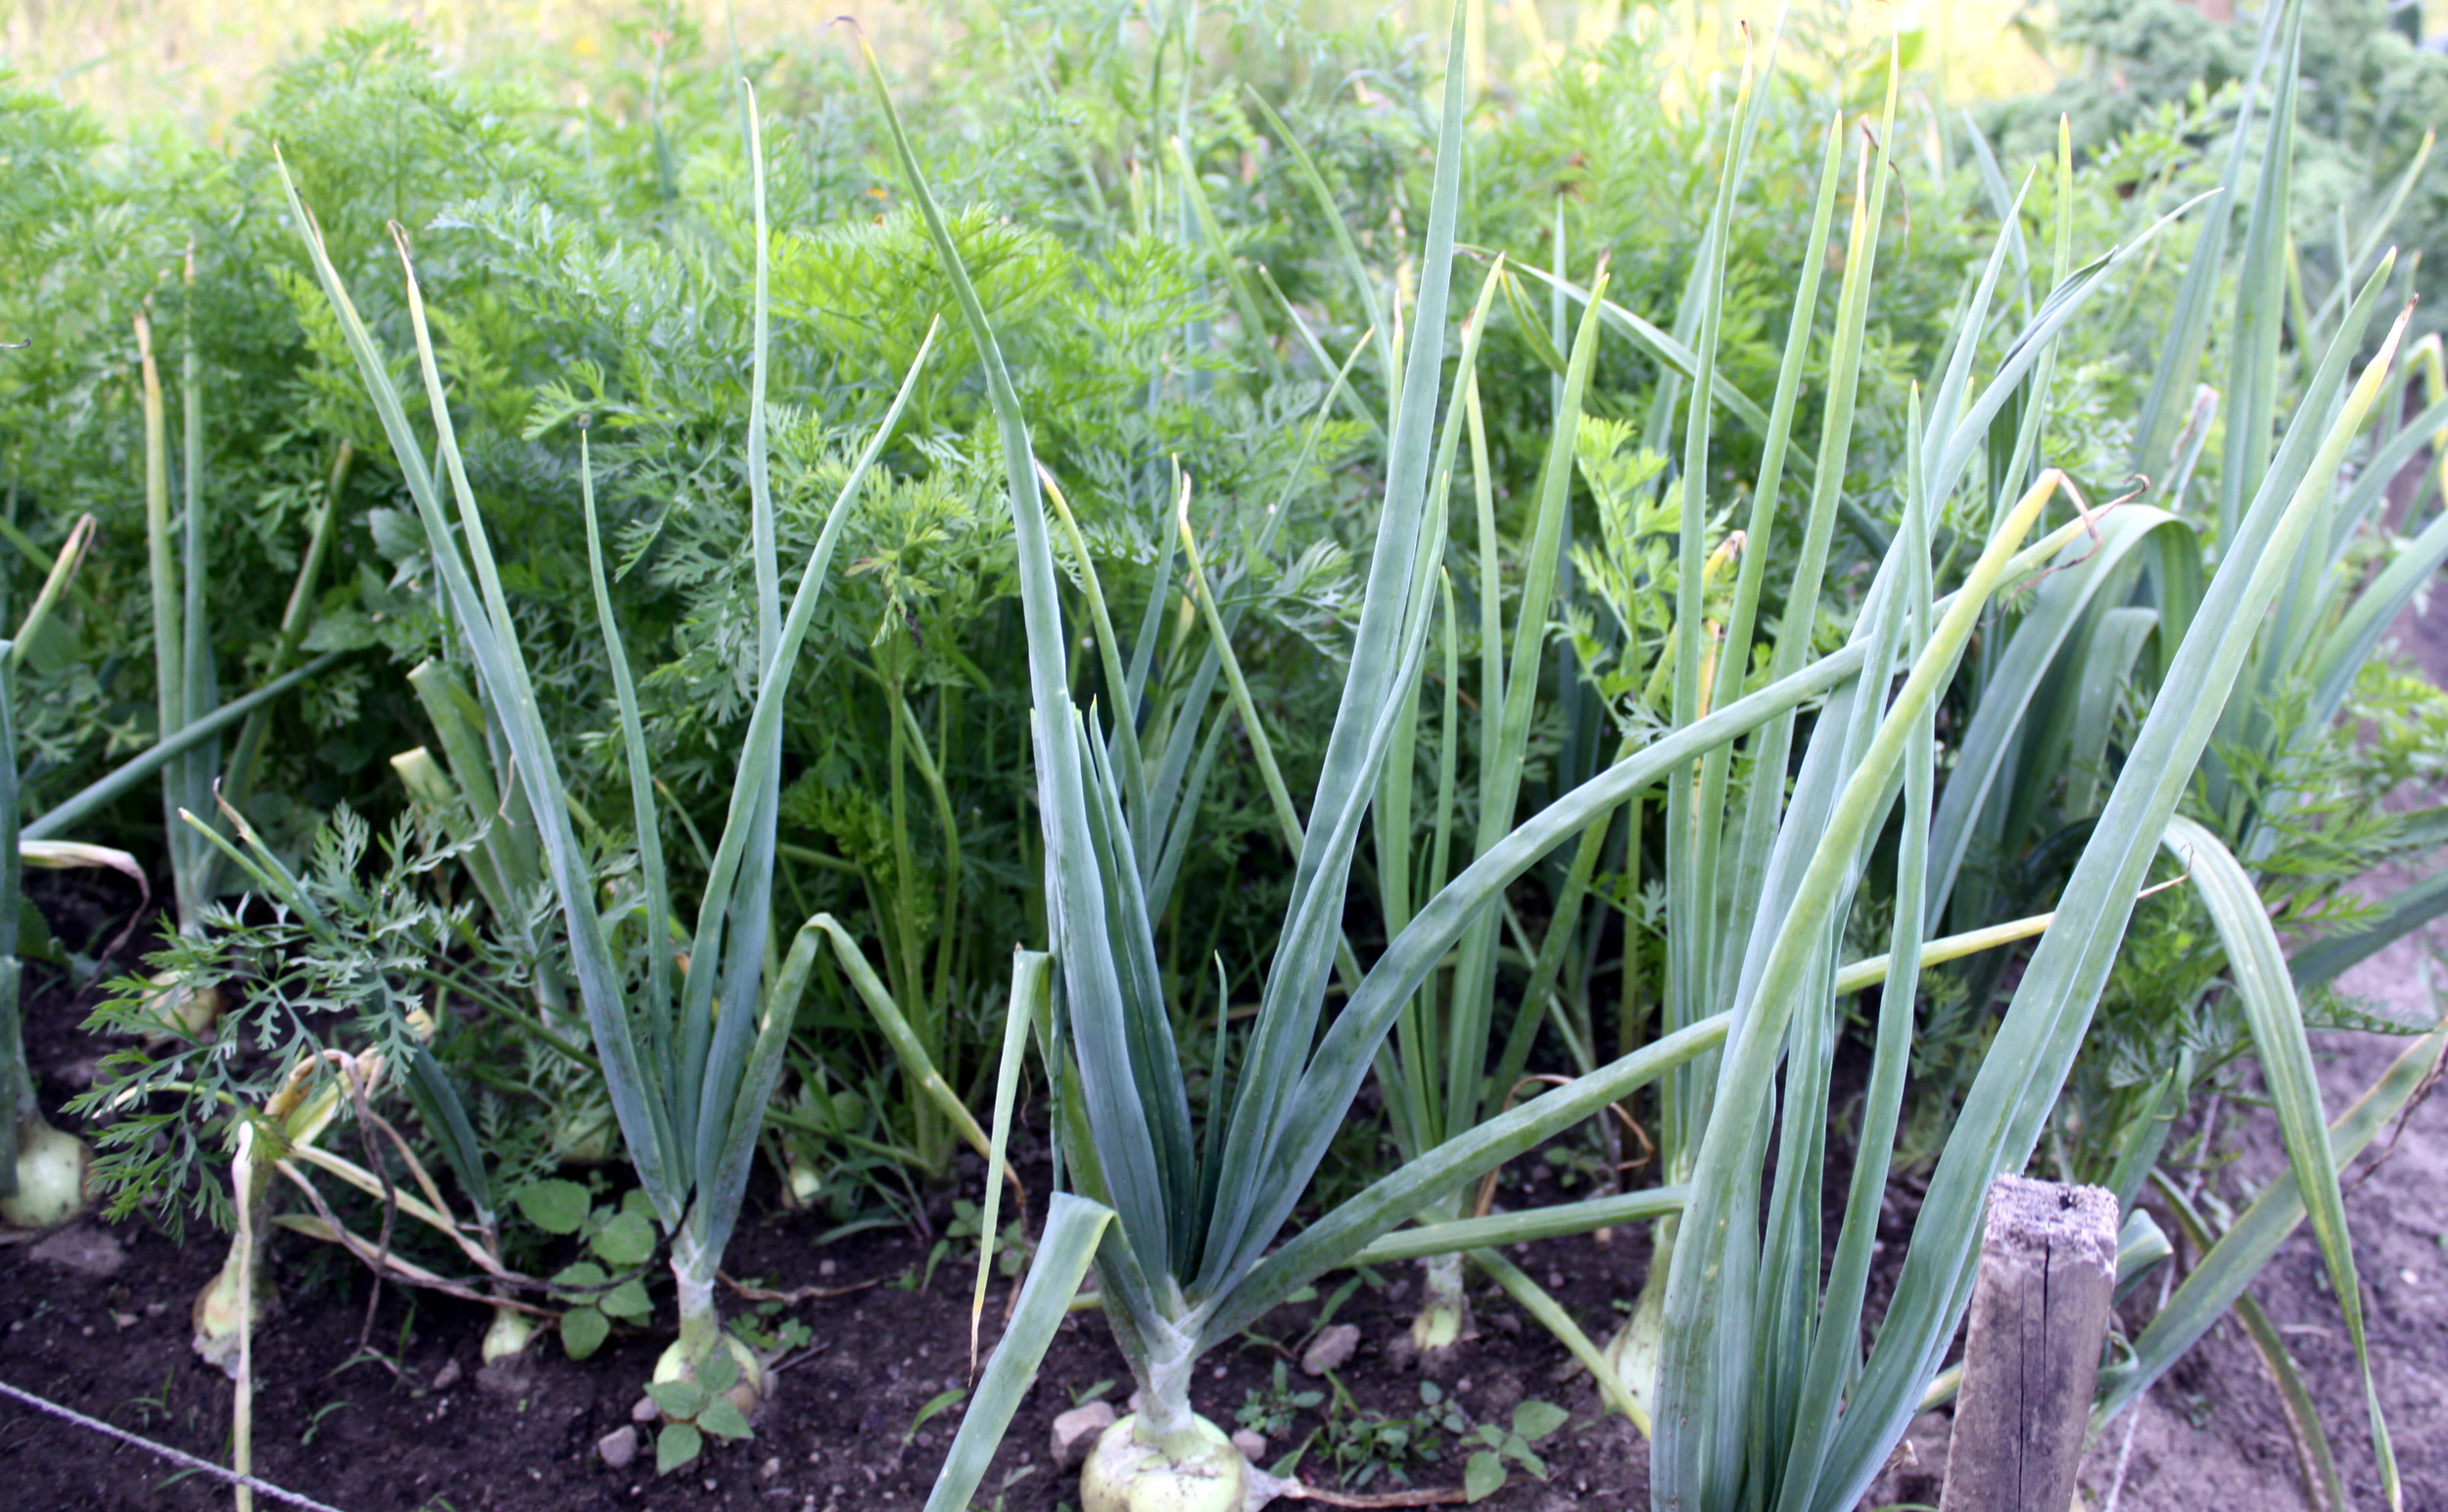 Green onions have one of the highest concentrations of phytonutrients.